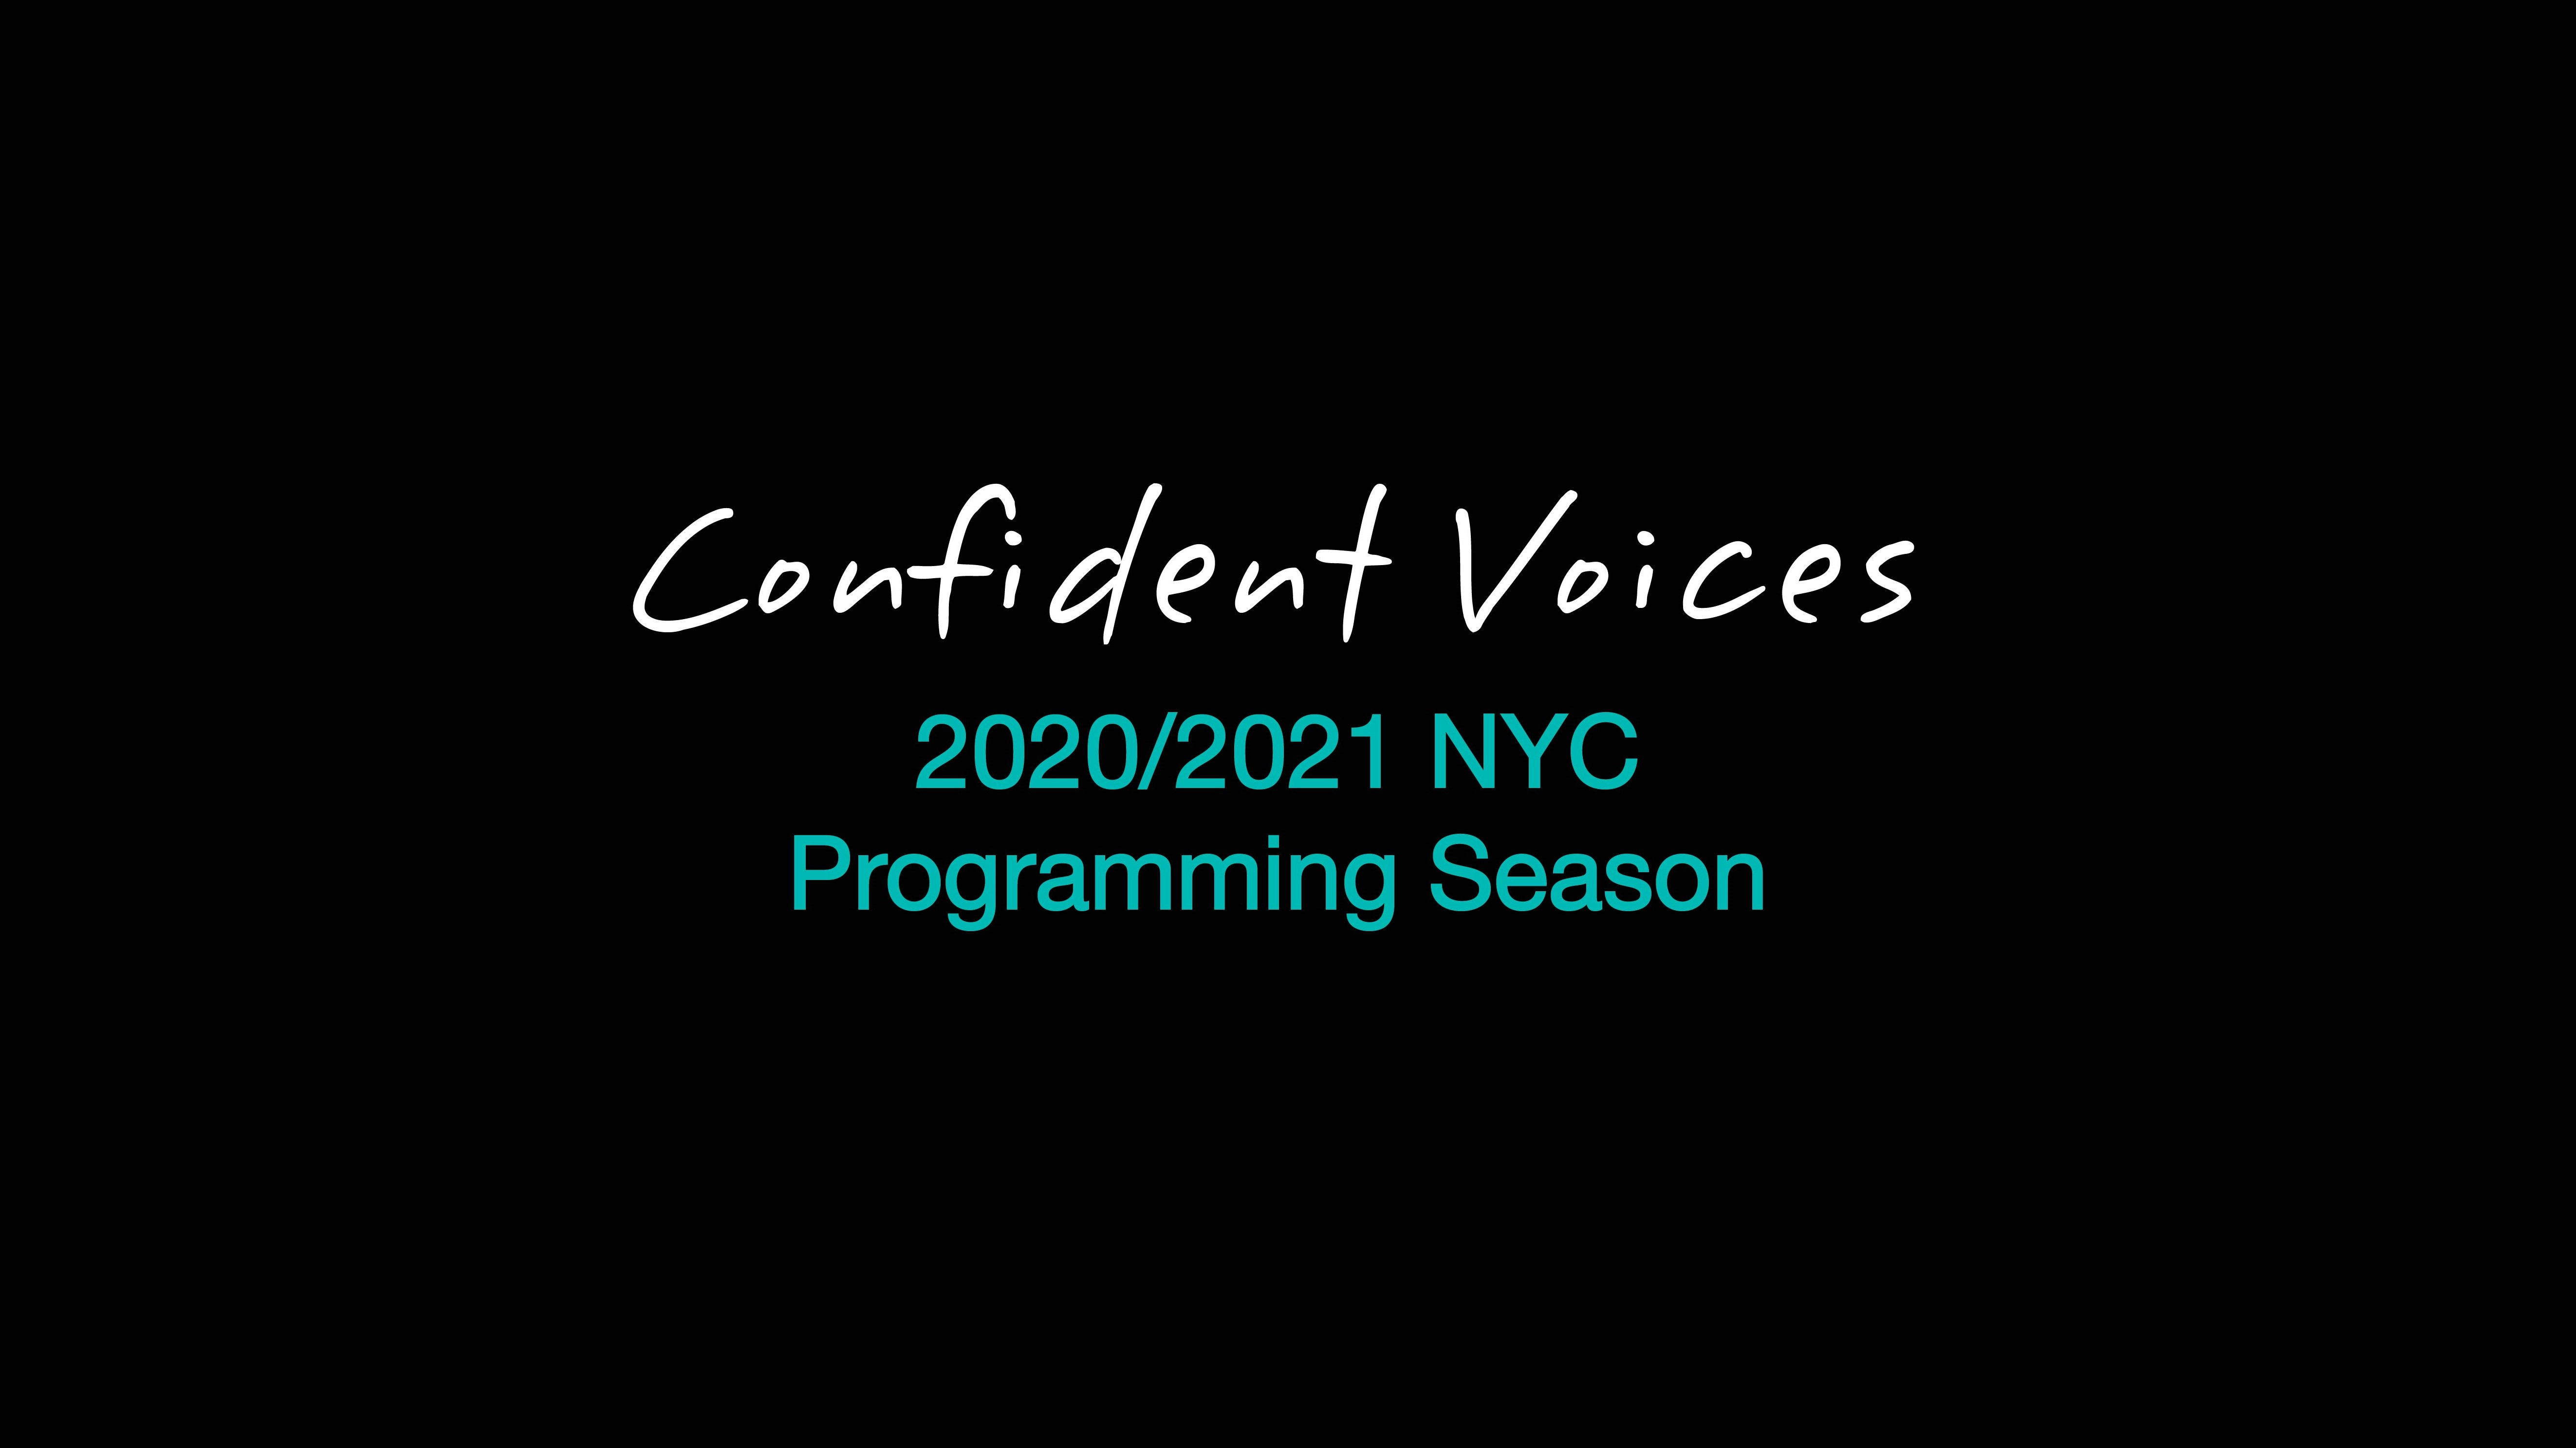 SAY: Confident Voices NYC 2020/2021